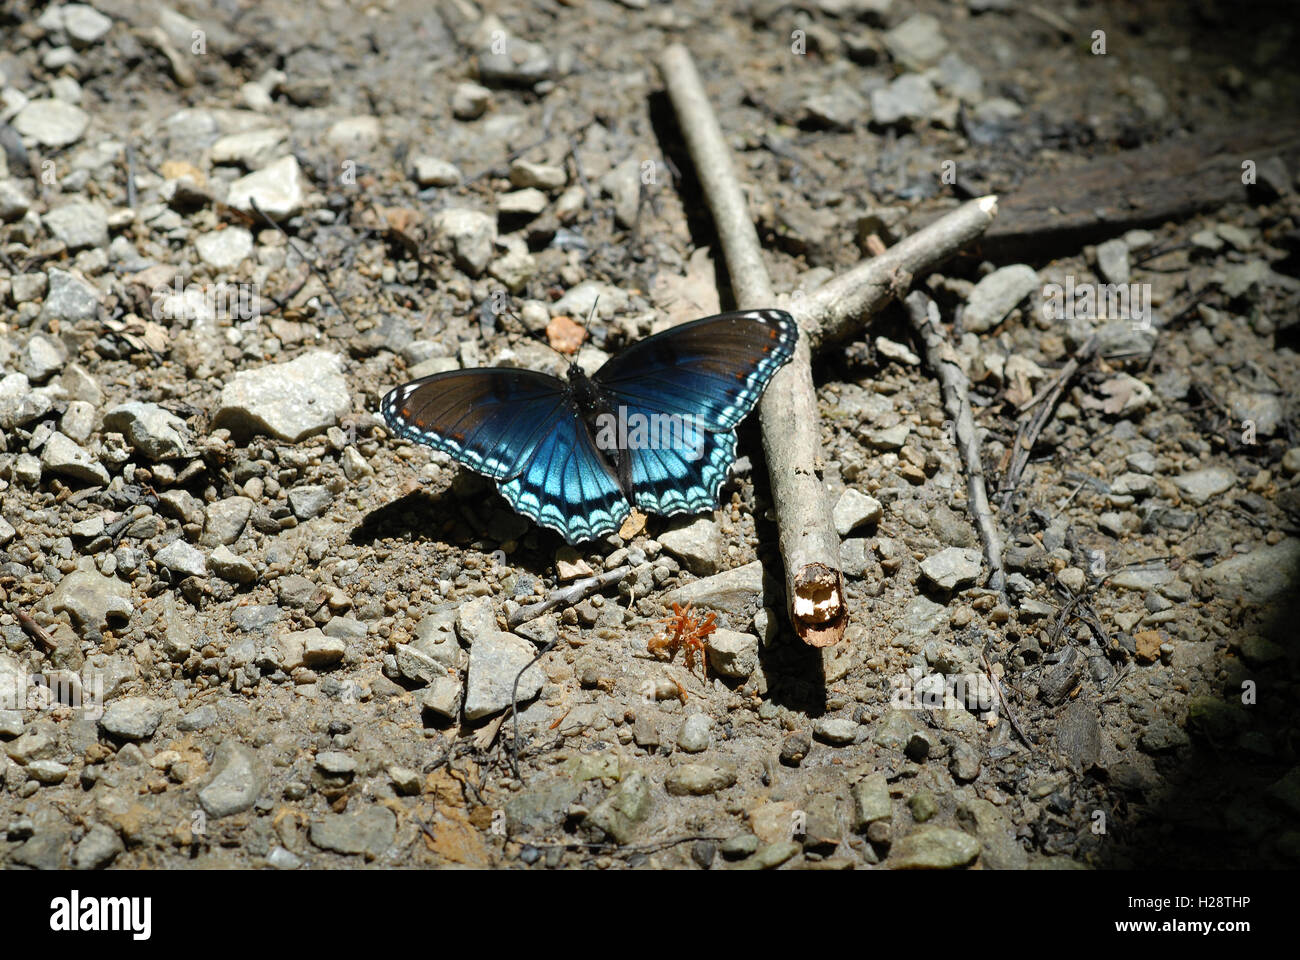 Limenitis arthemis astyanax - Red-spotted Purple butterfly - Stock Image